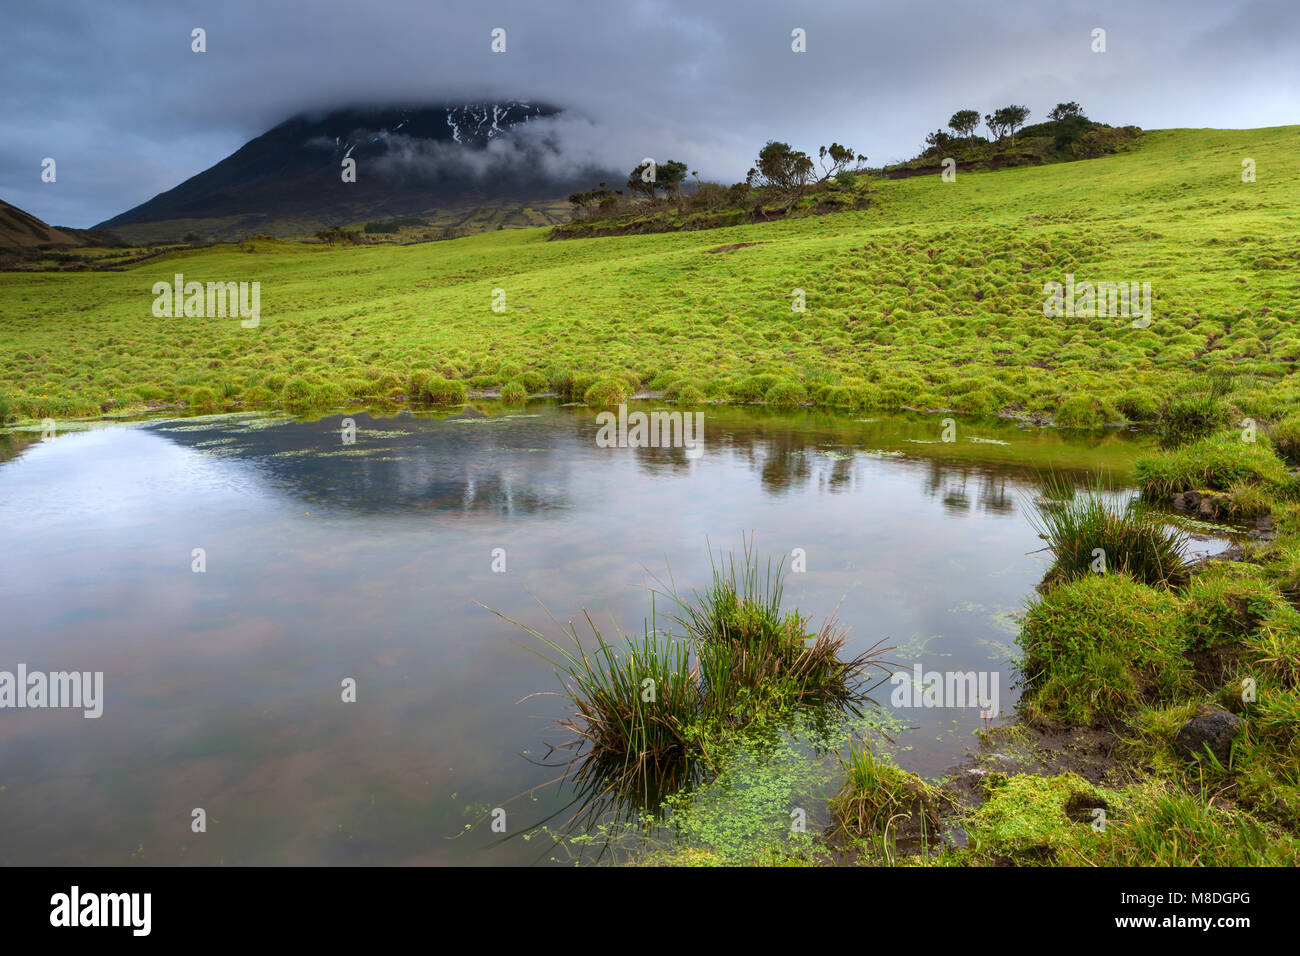 Portugal, Azoren, Pico, Montanha do Pico - Stock Image